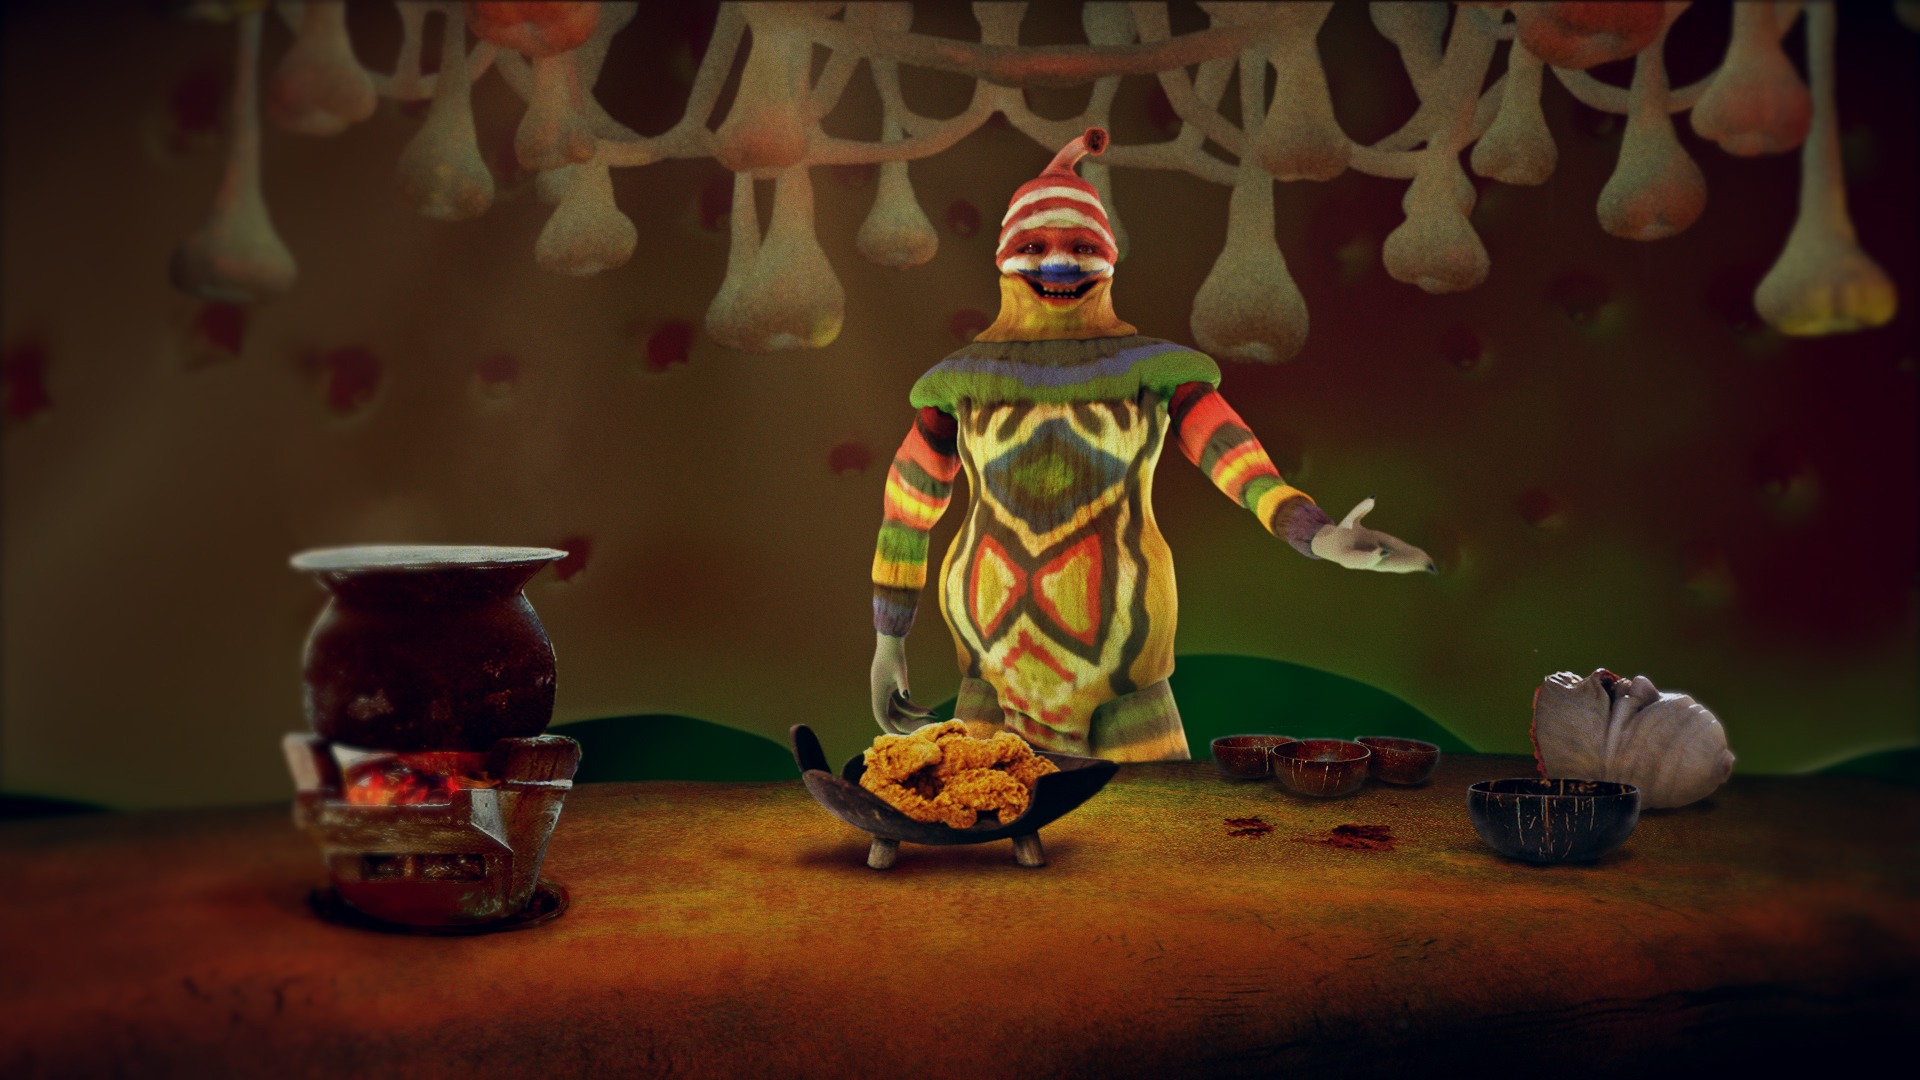 Experimental animated film by Dongjun Kim, MFA Computer Arts. A colorful alien is presenting food that looks like fried chicken.